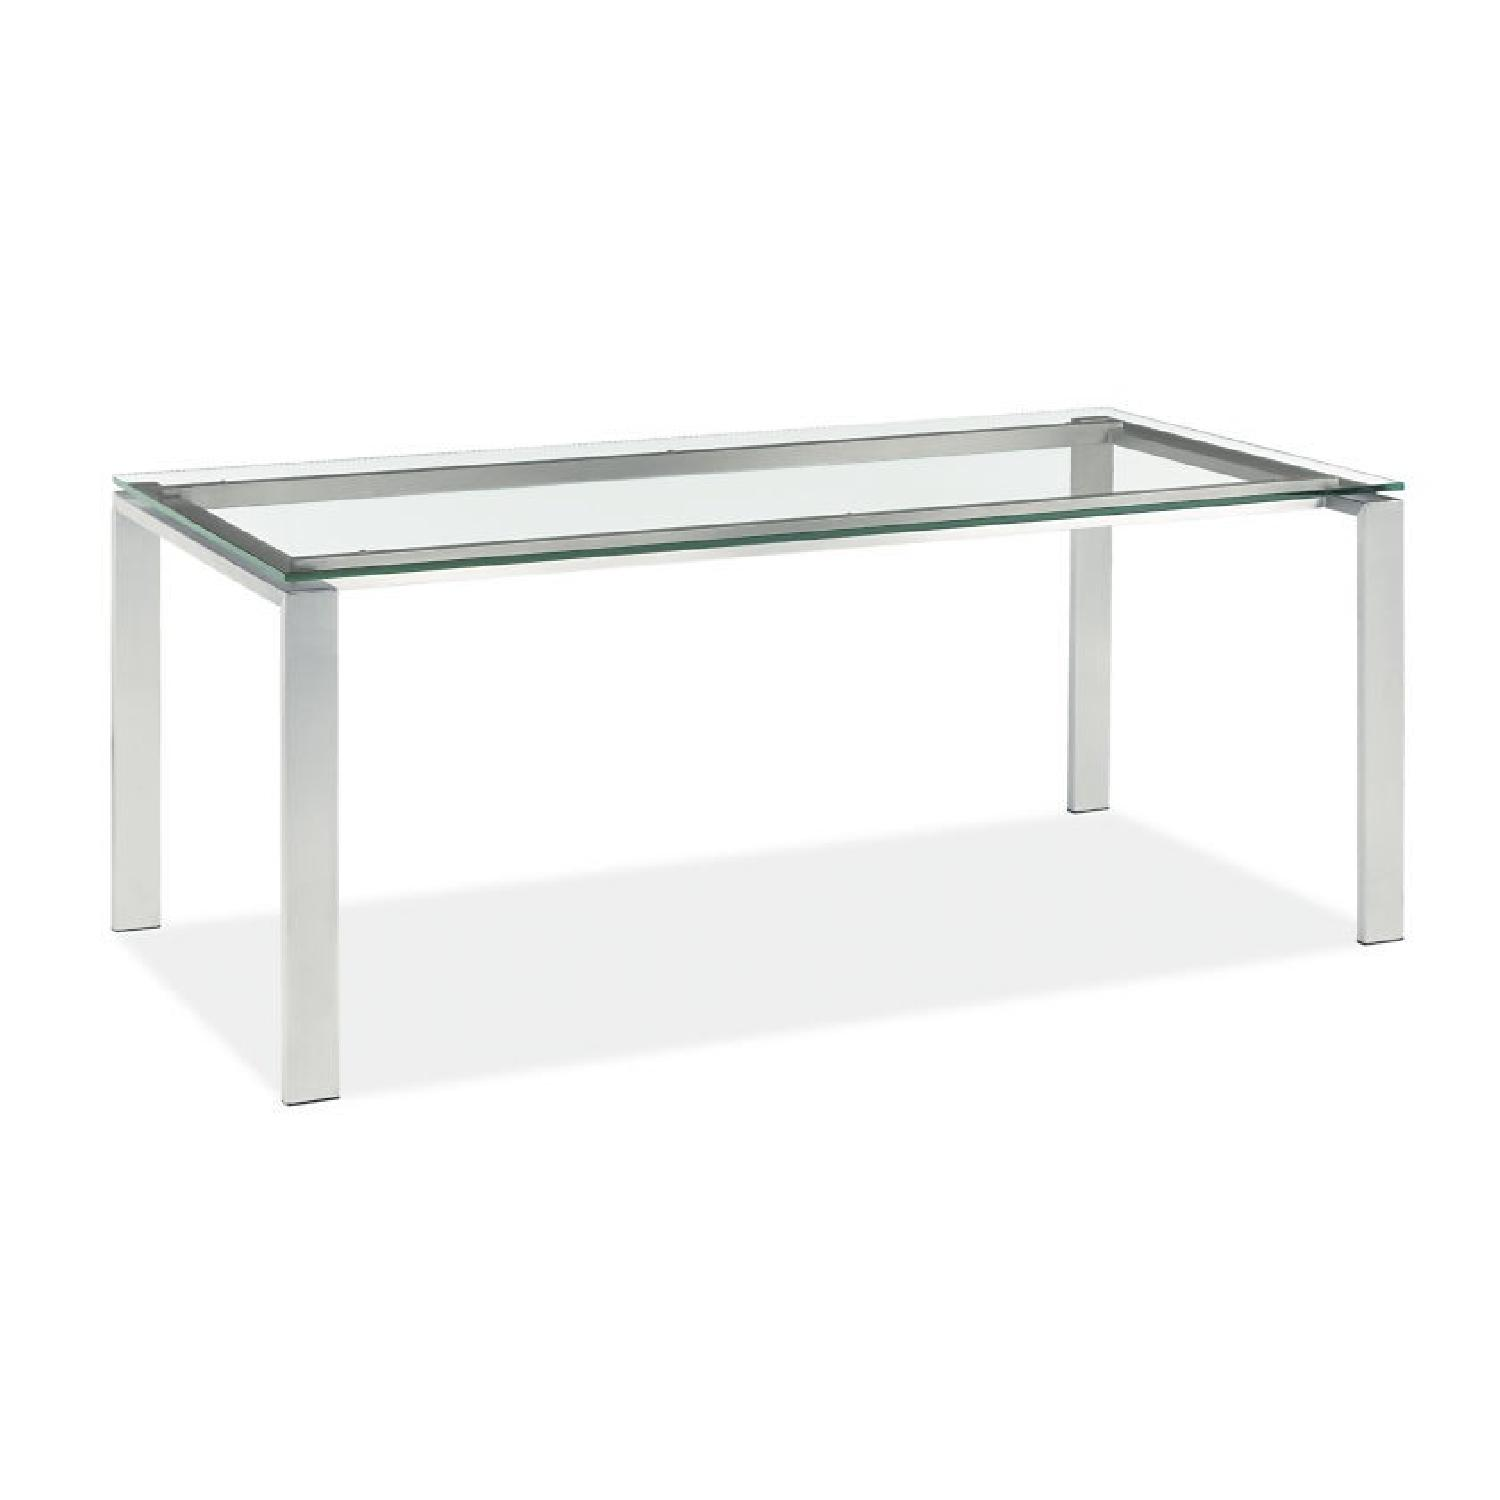 Coffee table room and board coffee table room and board room u0026 board glass u0026 stainless steel console table aptdeco geotapseo Image collections